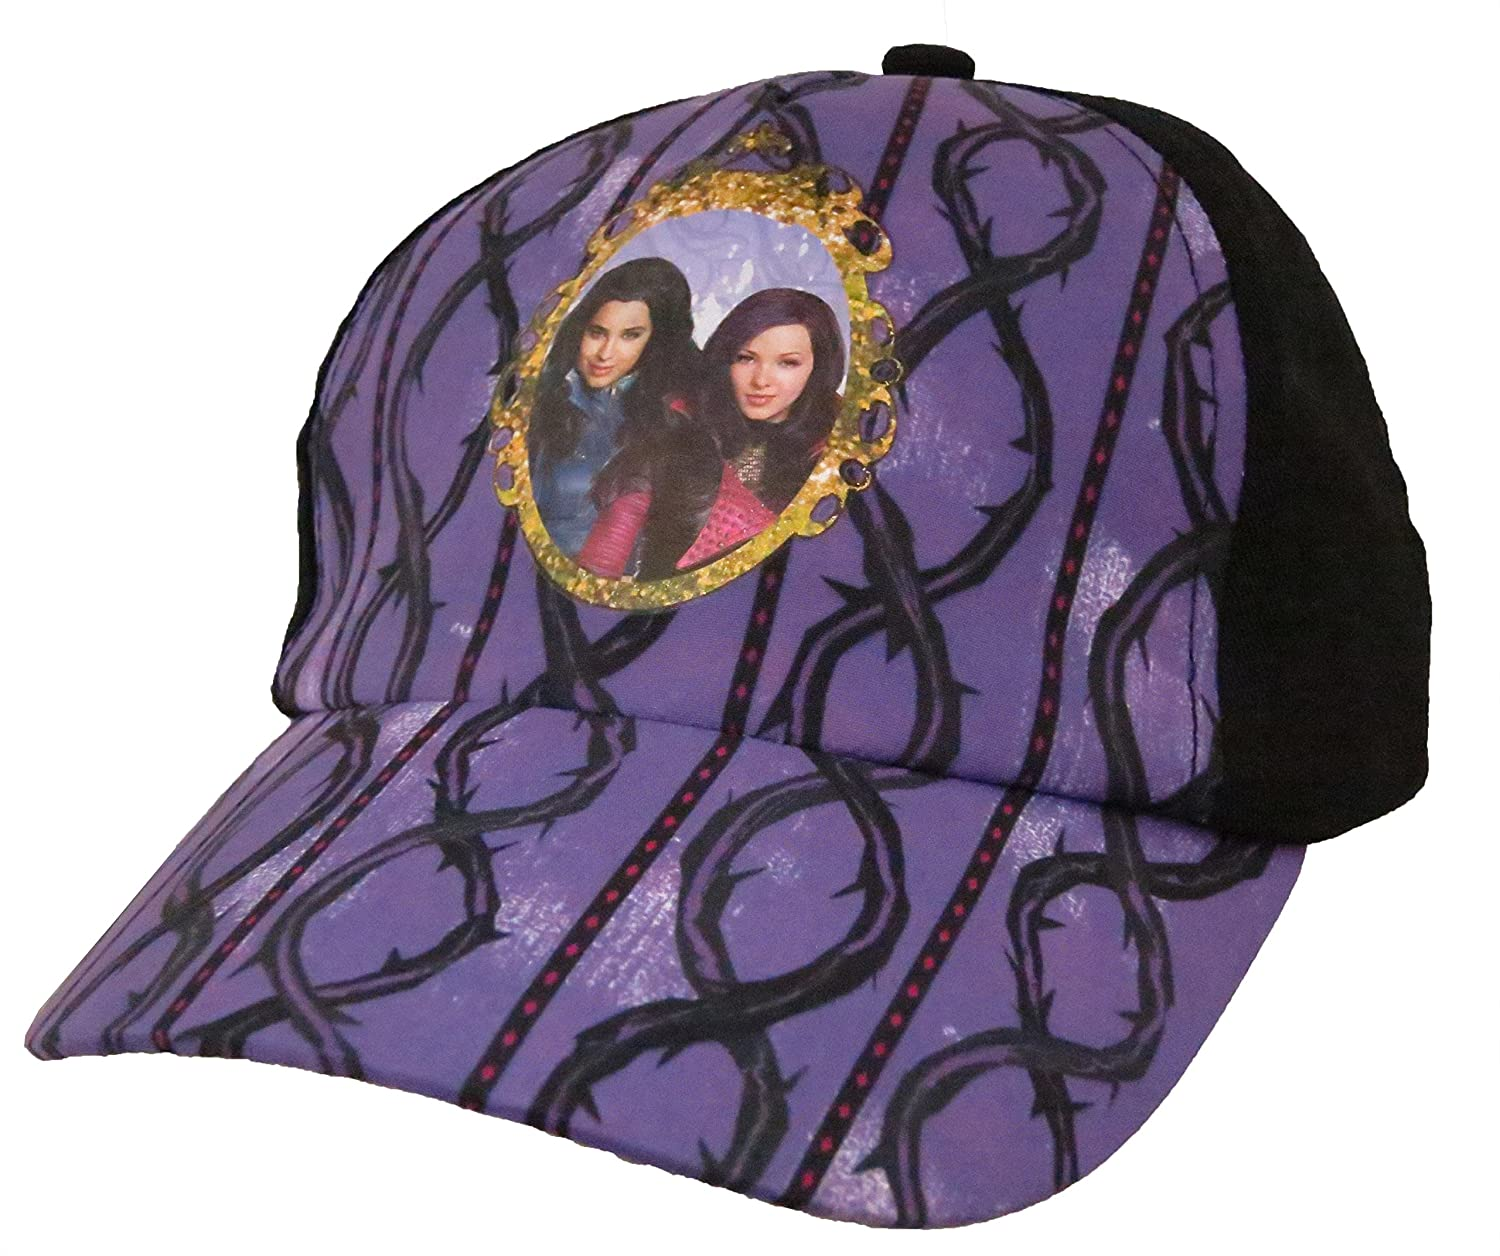 Amazon.com  Disney Descendants Girls Purple Baseball Cap  6012   Clothing 12b46221cc74